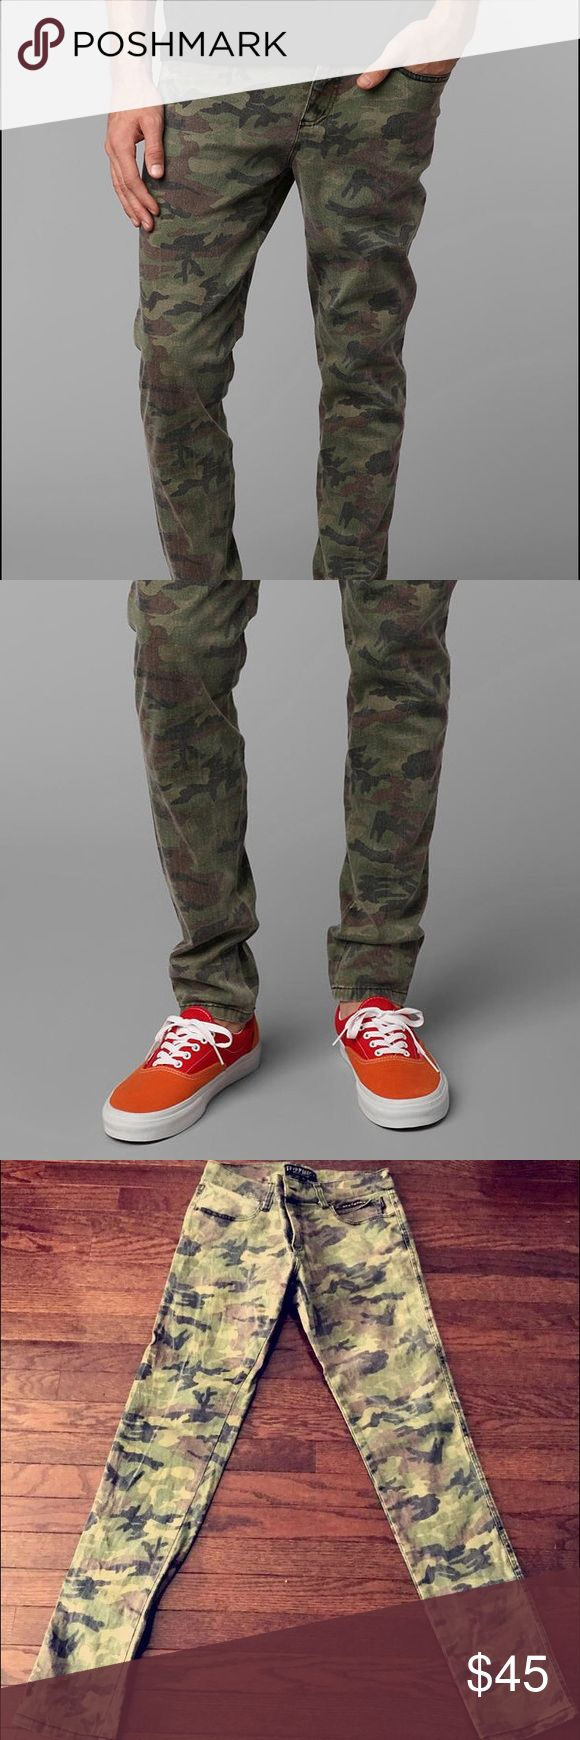 Tripp NYC Men's Camo skinny jeans Mens Camo Skinny Jeans. Size 30. Five pocket slim fit stretch denim with silver rivets. Zip fly and button closure. Worn once. Tripp nyc Jeans Skinny